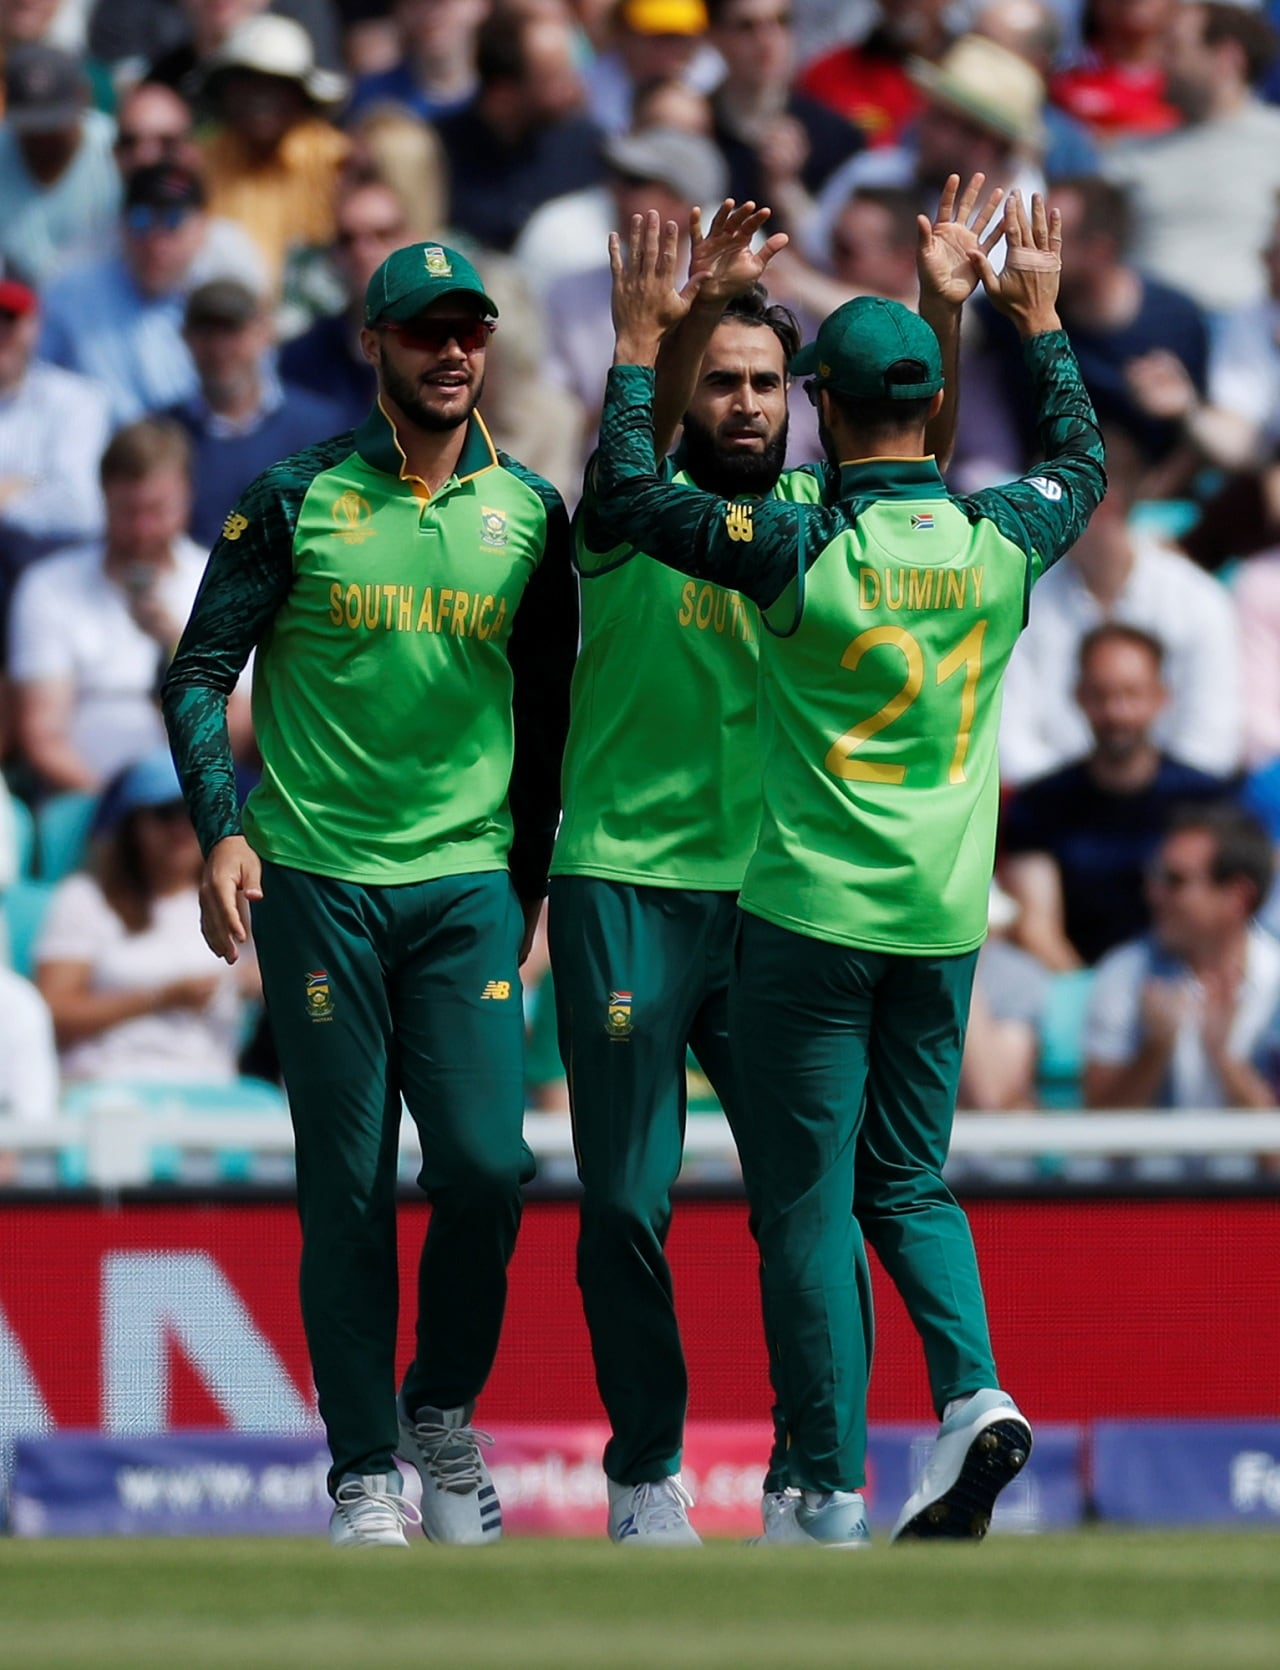 Cricket - ICC Cricket World Cup - England v South Africa - Kia Oval, London, Britain - May 30, 2019 South Africa's Imran Tahir celebrates with team mates after taking the wicket of England's Jonny Bairstow Action Images via Reuters/Paul Childs